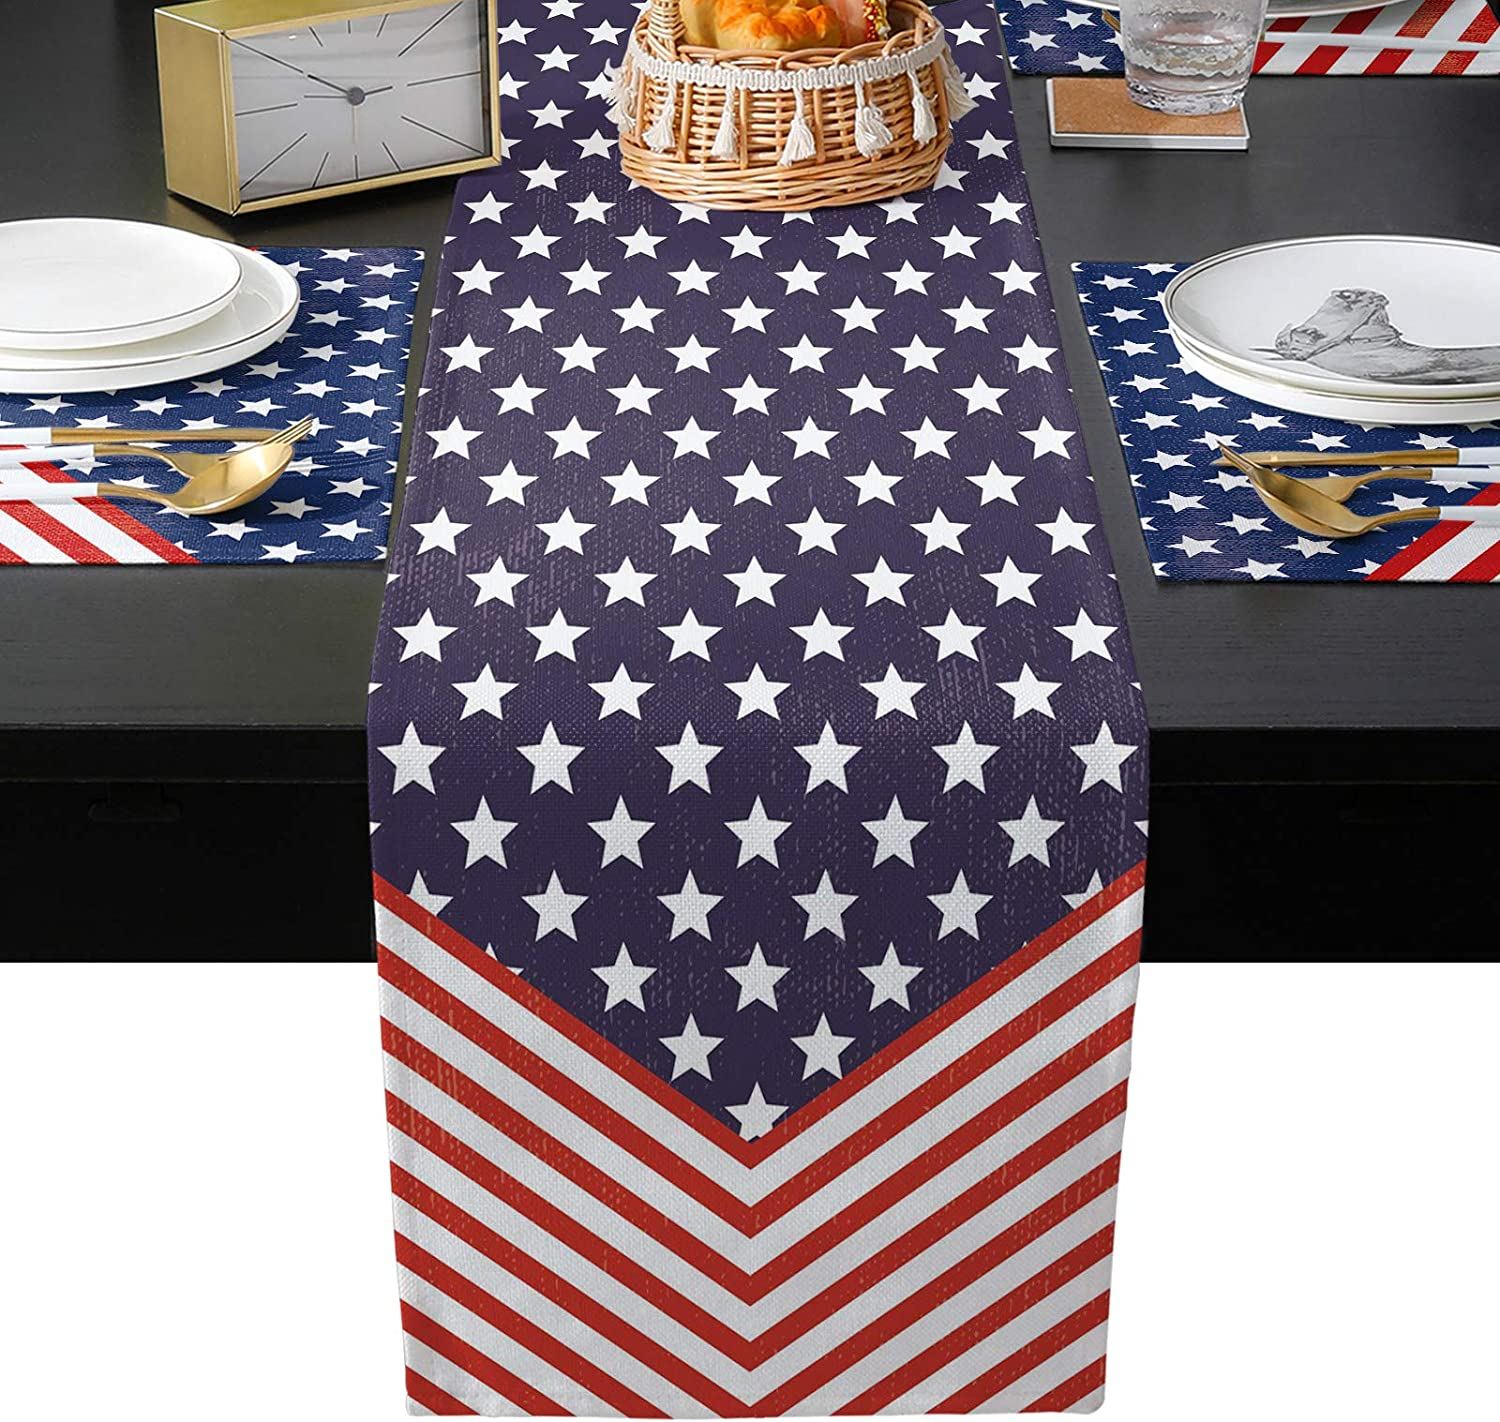 EZON-CH Table Runner with 4 Day Super intense SALE American Placemats Independence Superlatite